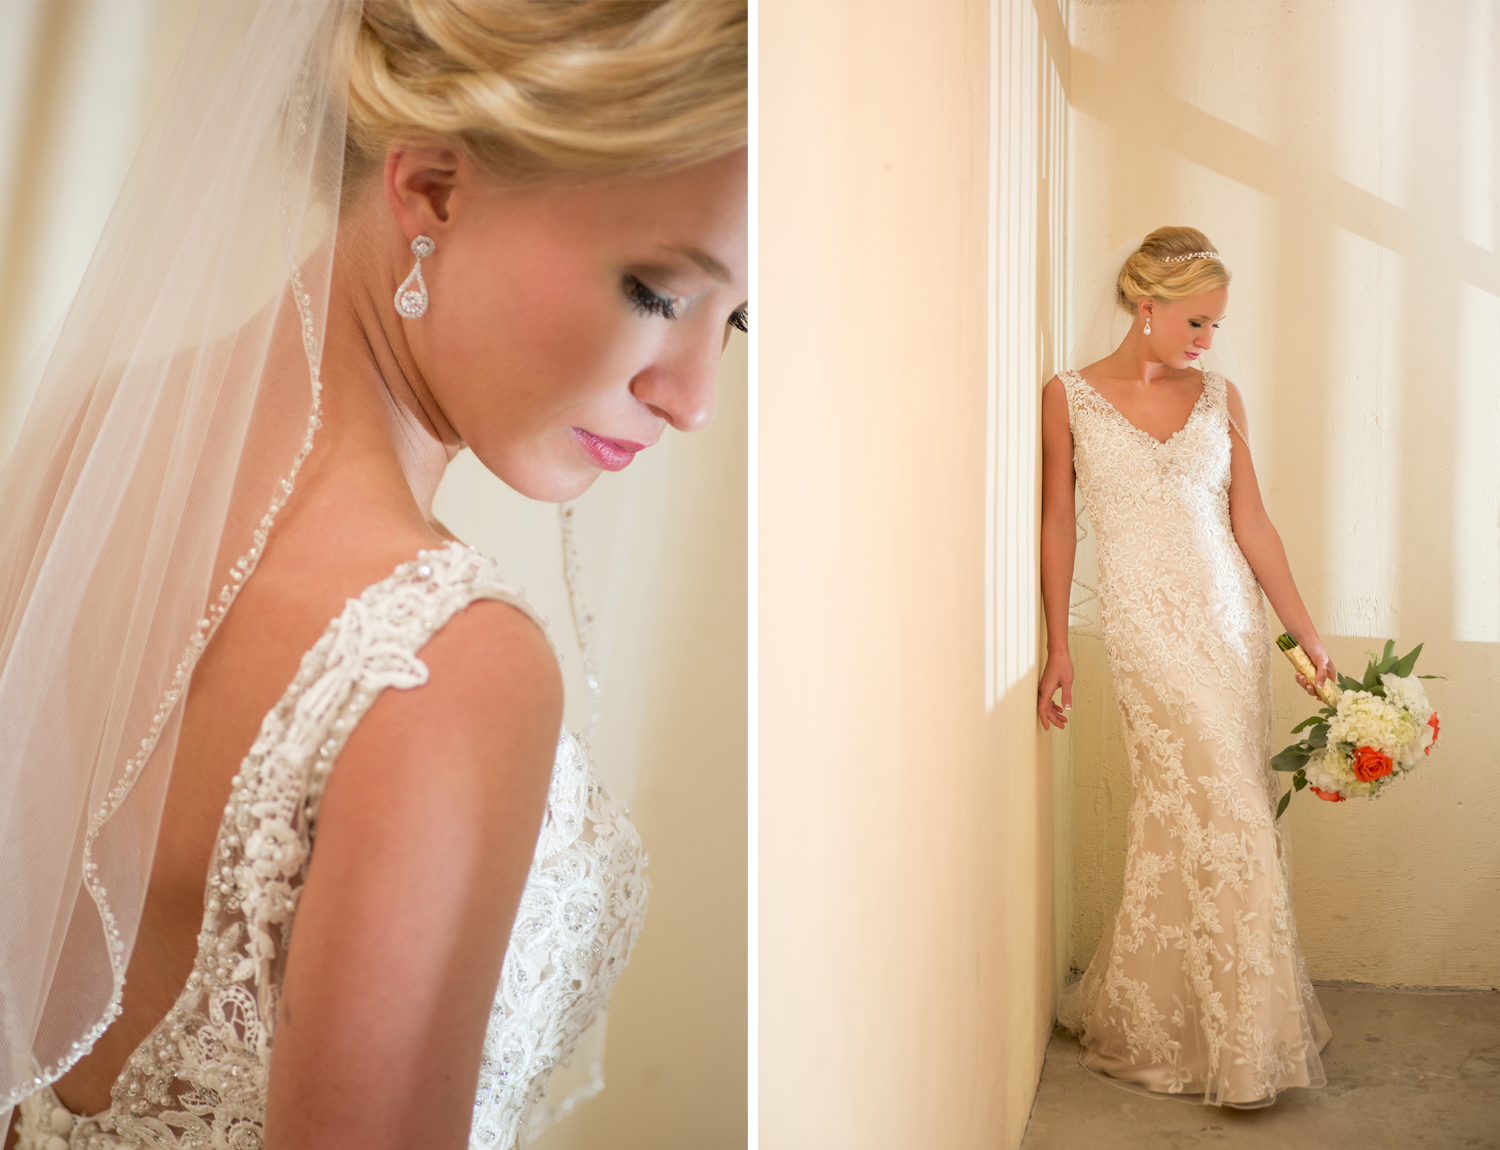 St Henry Ohio, bridal portrait, lace wedding gown, sheath gown, bride details, getting ready